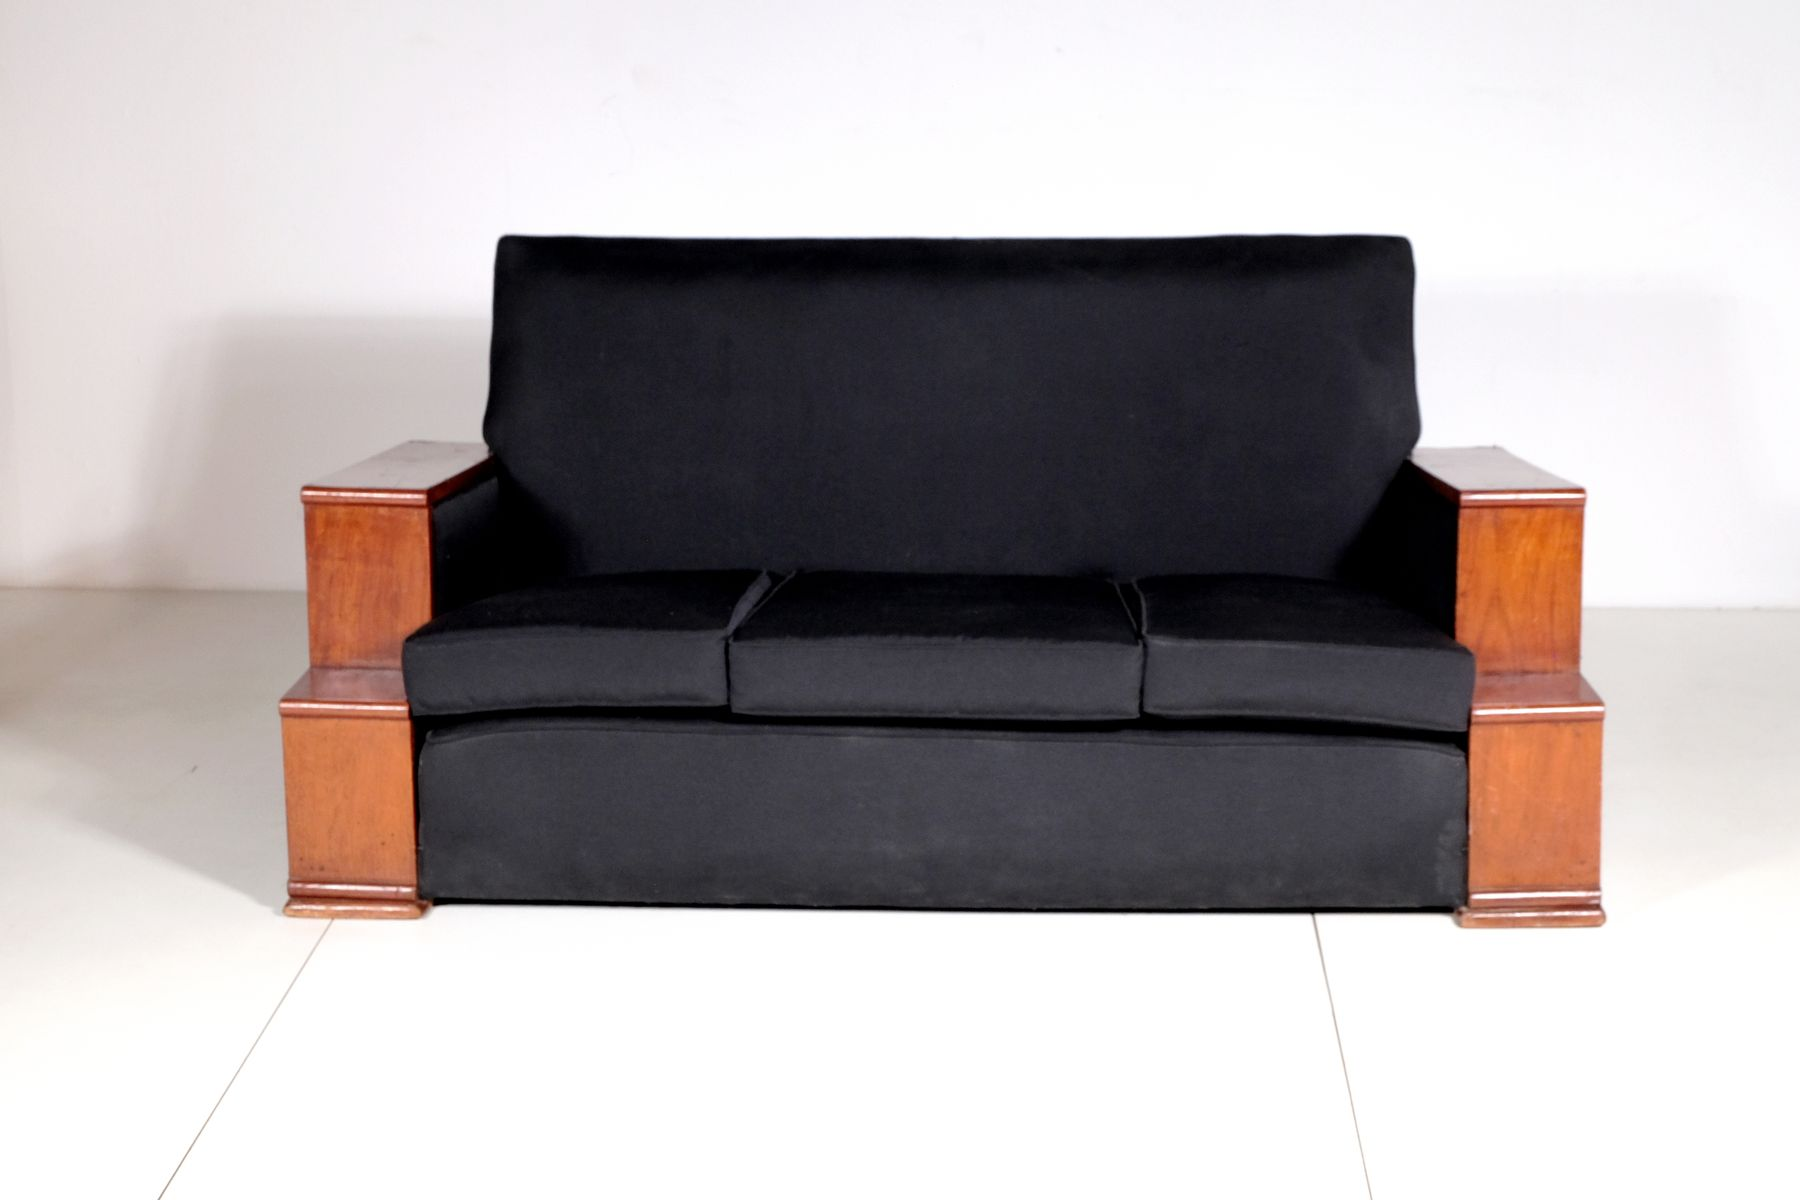 Vintage Art Deco Rosewood And Black Cotton Sofa 1930s